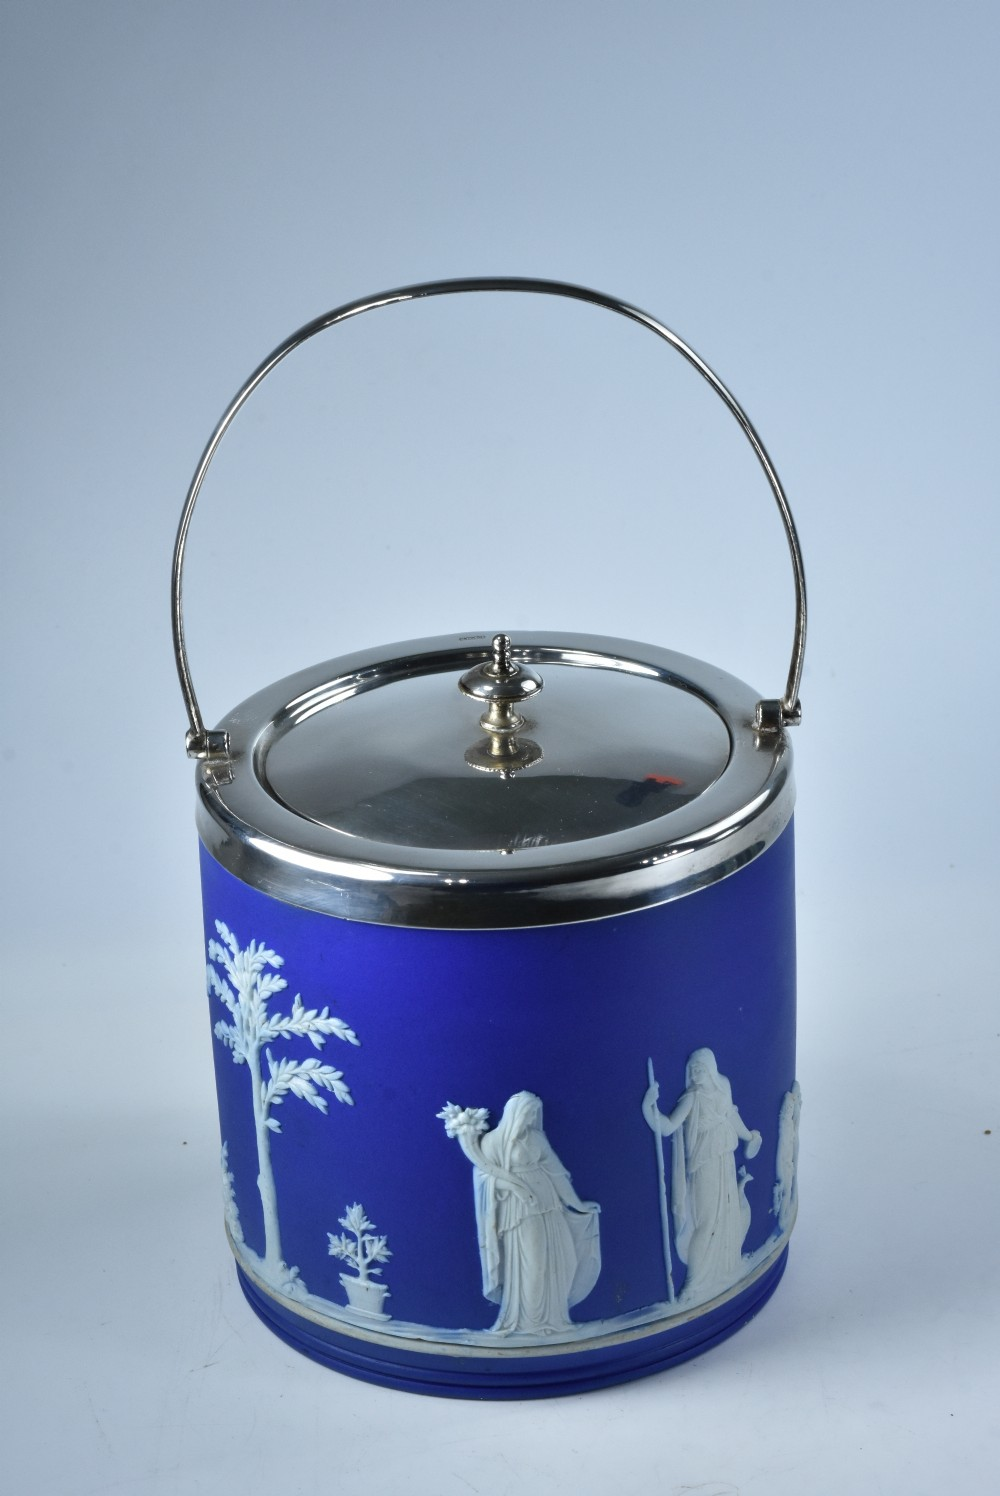 wedgwood antique jasper ware ice bucket with sp lid rim and handle